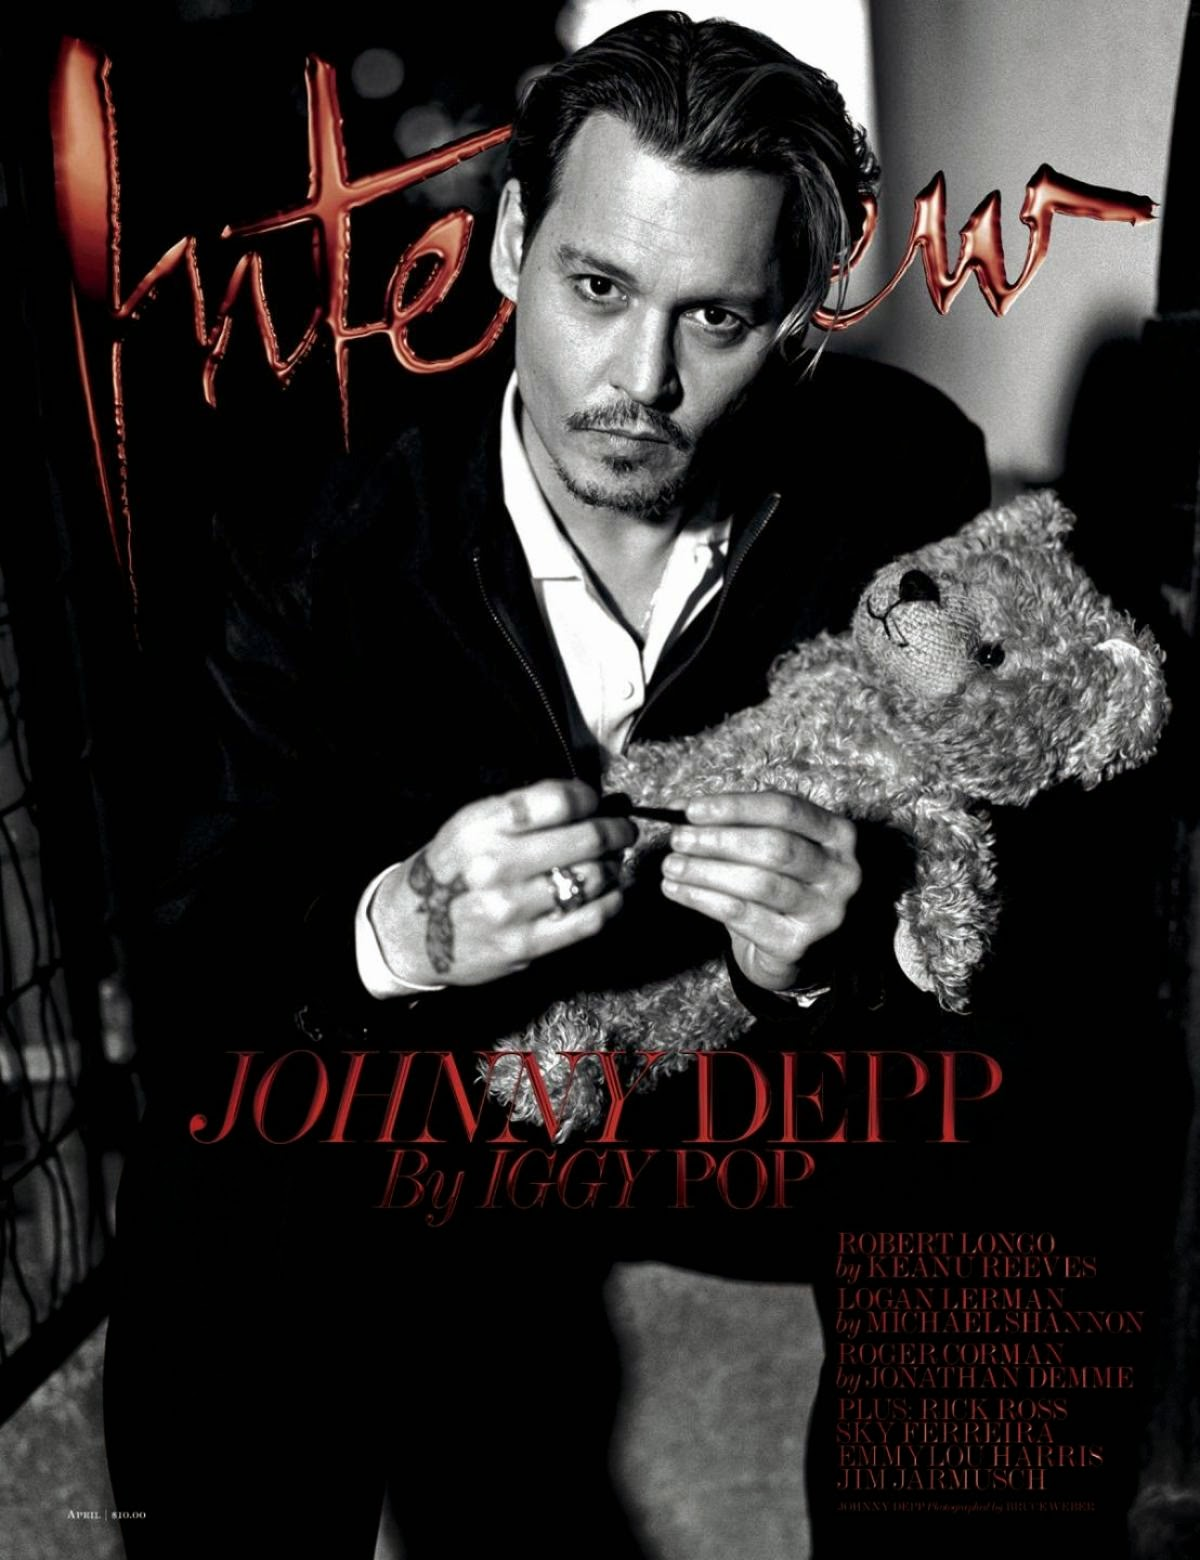 Johnny Depp by Bruce Weber